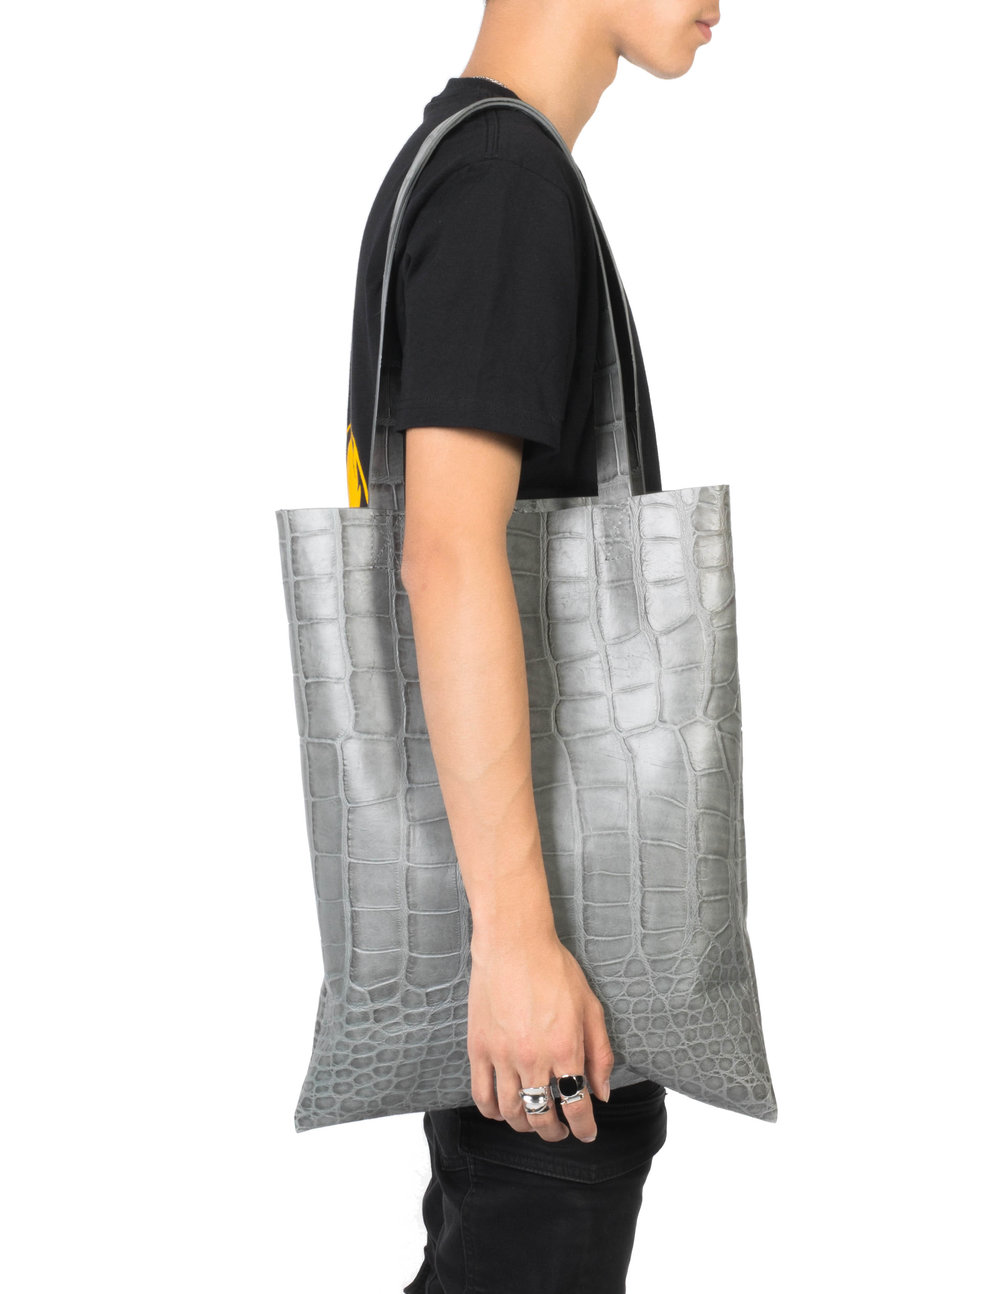 - 4. Leather Tote BagIt looks so good, someone might actually try to grab it off your shoulders. Use with caution. We can't guarantee your safety, but we can guarantee that all eyes will be on you.